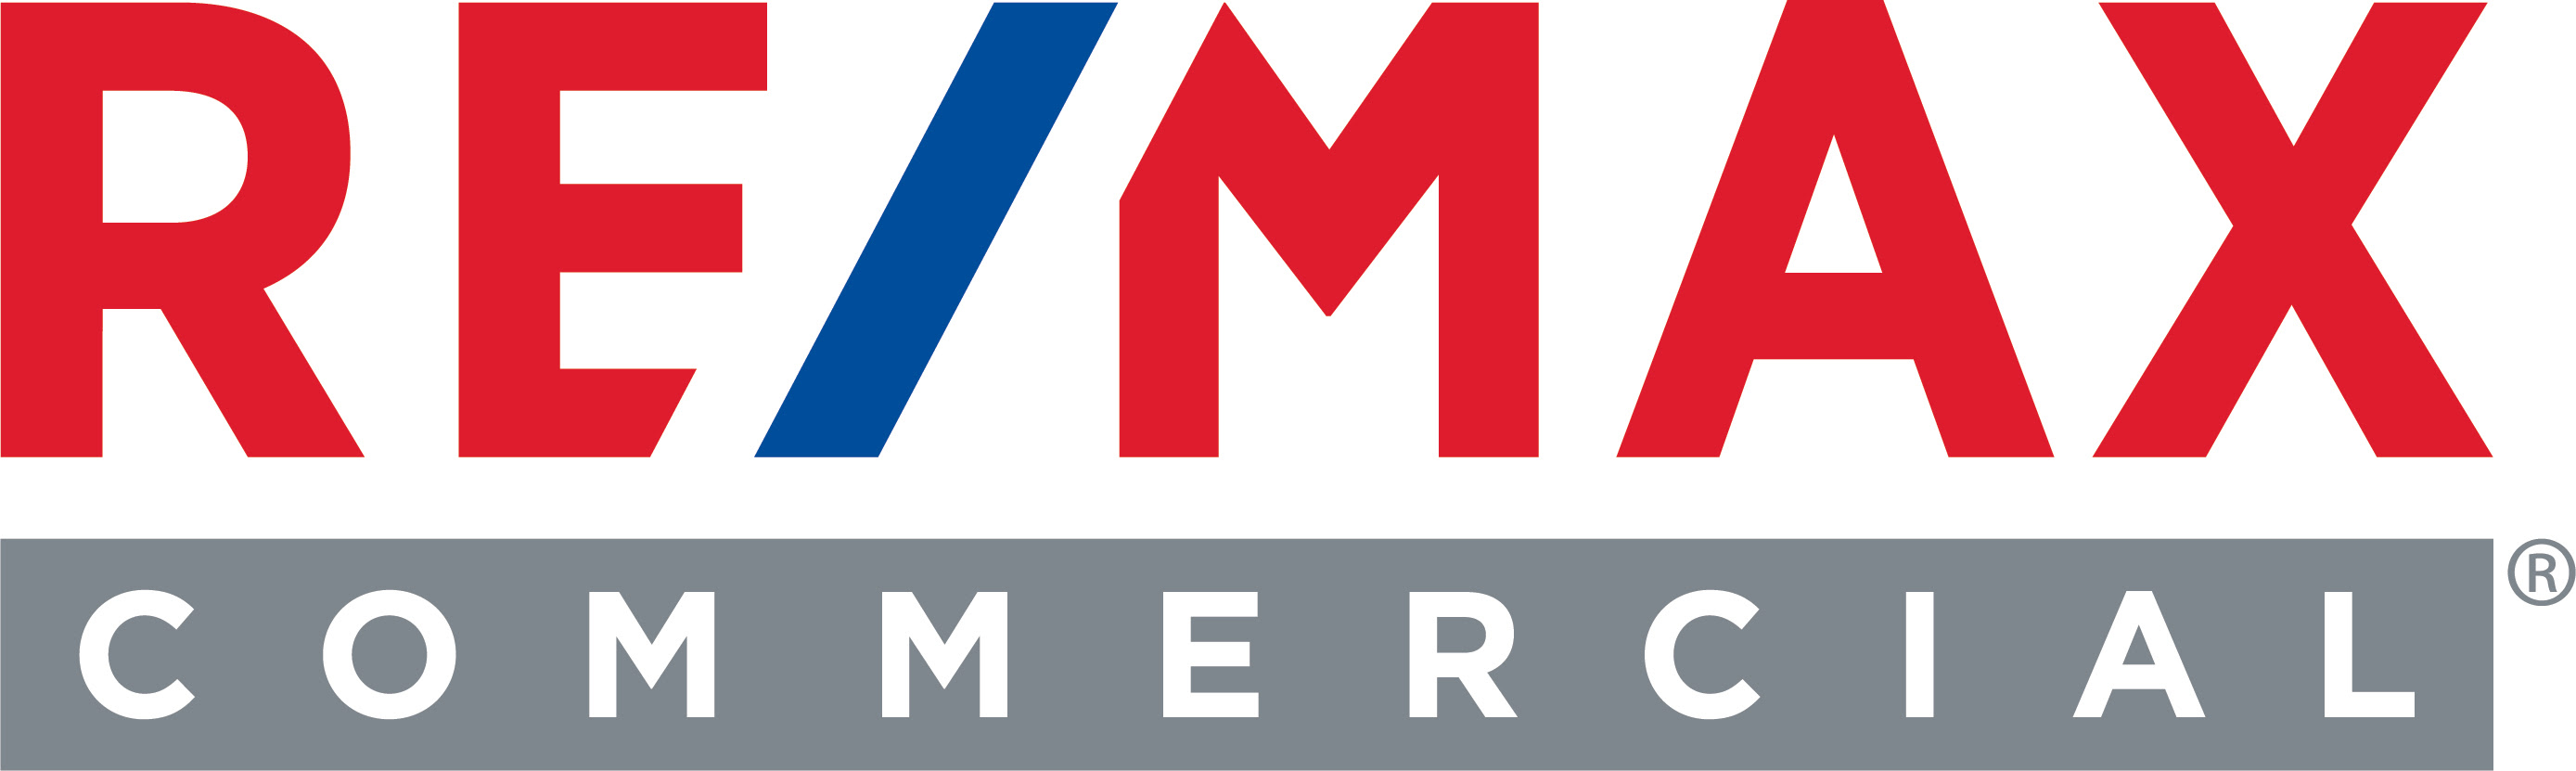 RE/MAX Preferred - Commercial Division photo